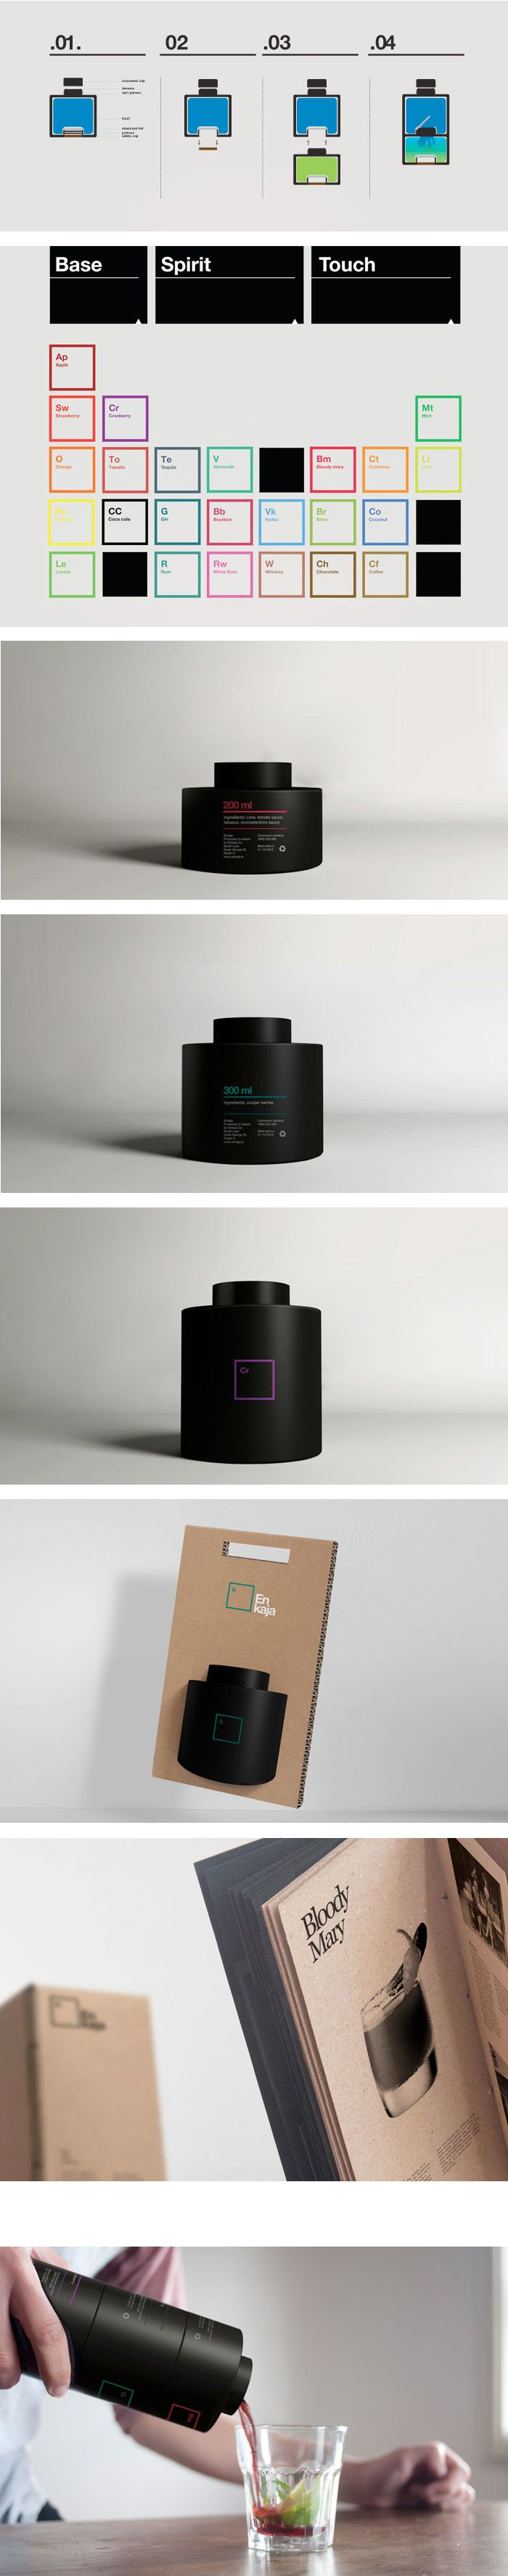 Enjaka Cocktail Mix — Tatabi Studio This is great #packaging #branding #marketing PD